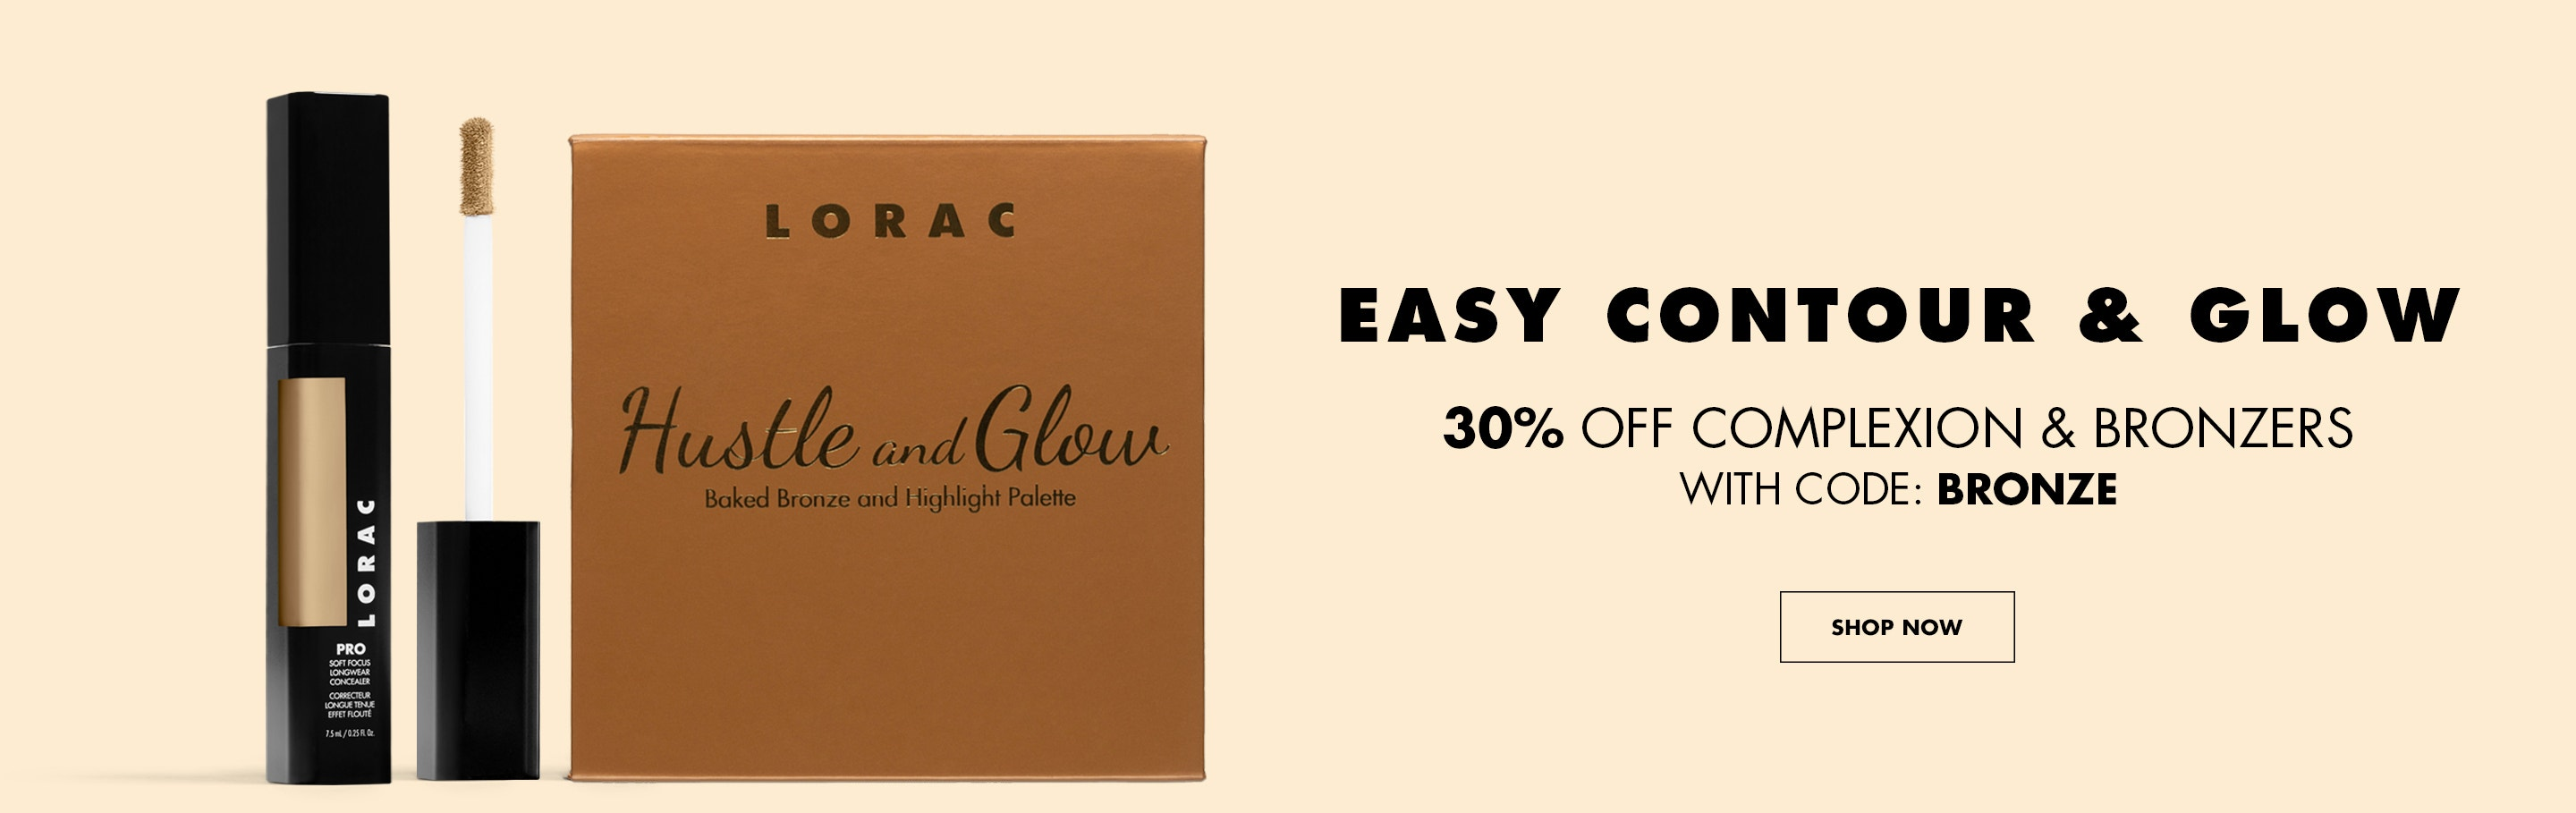 LORAC | 30% OFF Complexion and Bronzers with code: BRONZE |Two products front facing on beige background | SHOP NOW